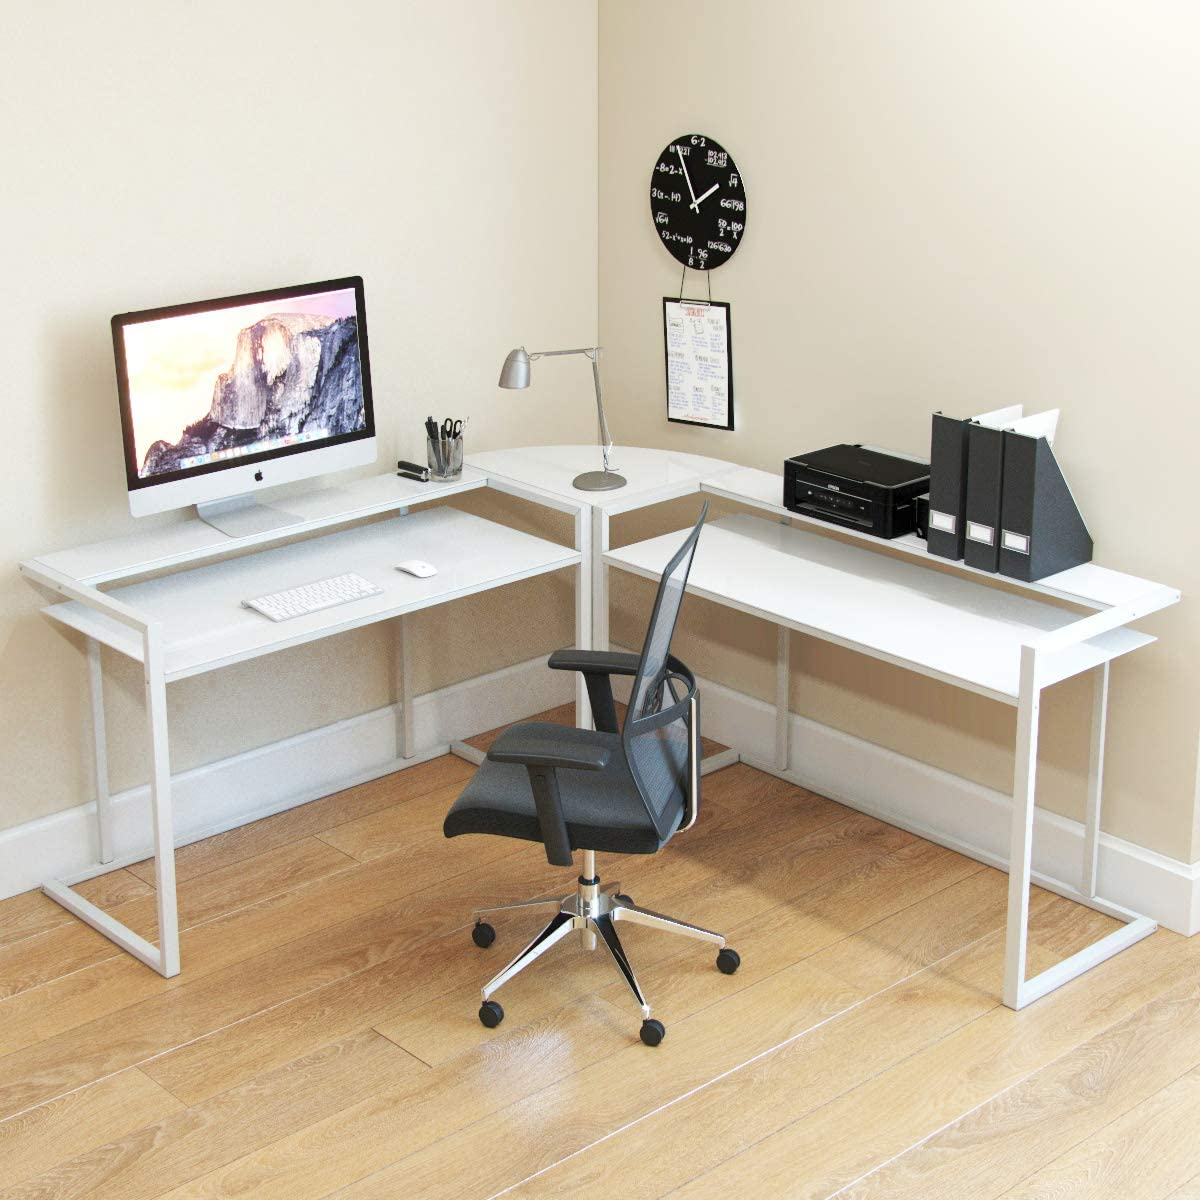 Ryan Rove Belmac Glass Large Modern L-Shaped Desk Corner Computer Office Desk for Small PC Laptop Study Table Workstation Home Office with Keyboard Shelf – White Frame and White Glass